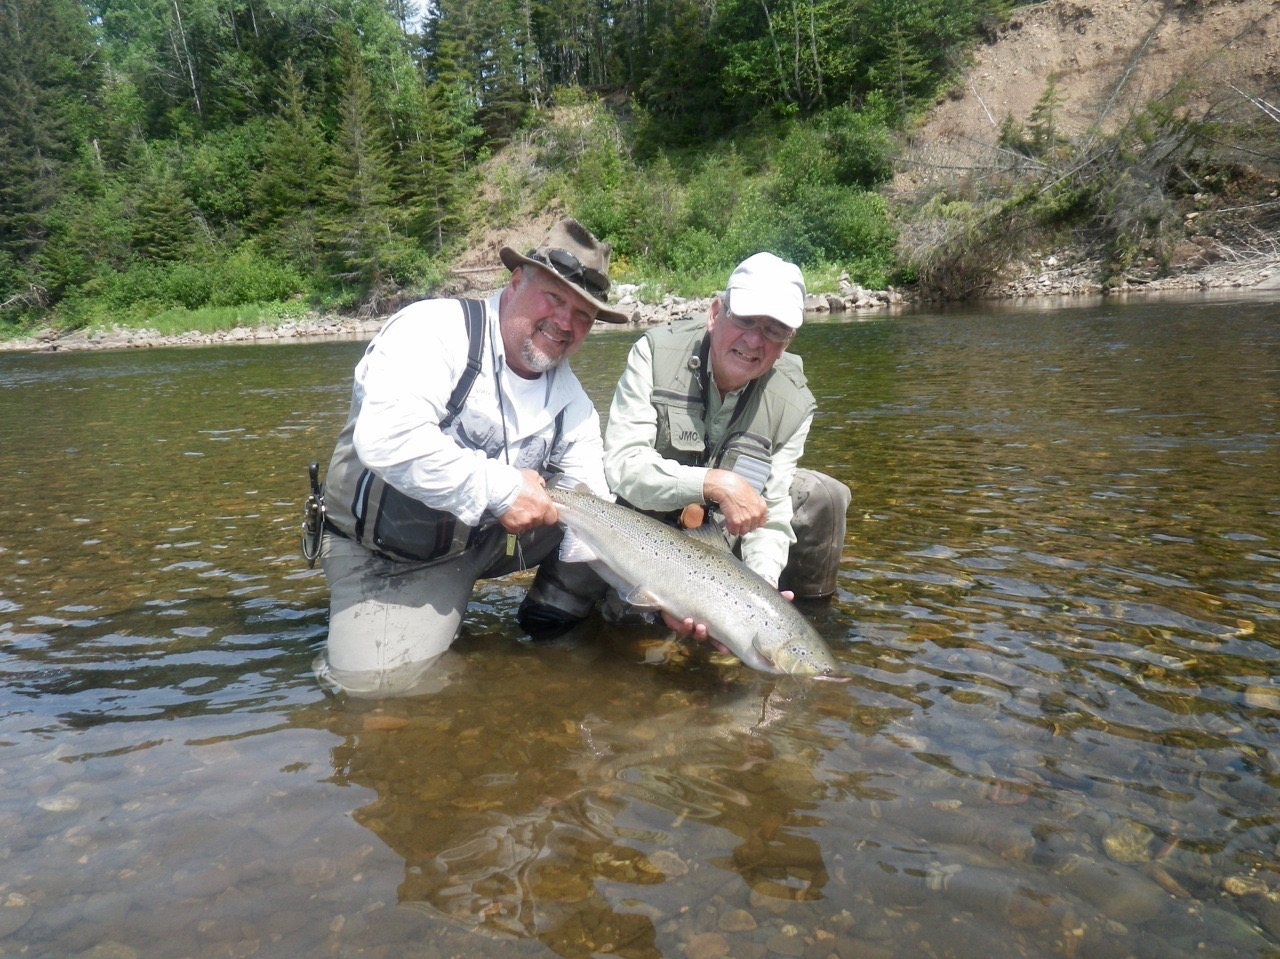 Phillip Hasson from France with his first Atlantic salmon, congratulations Phillip!